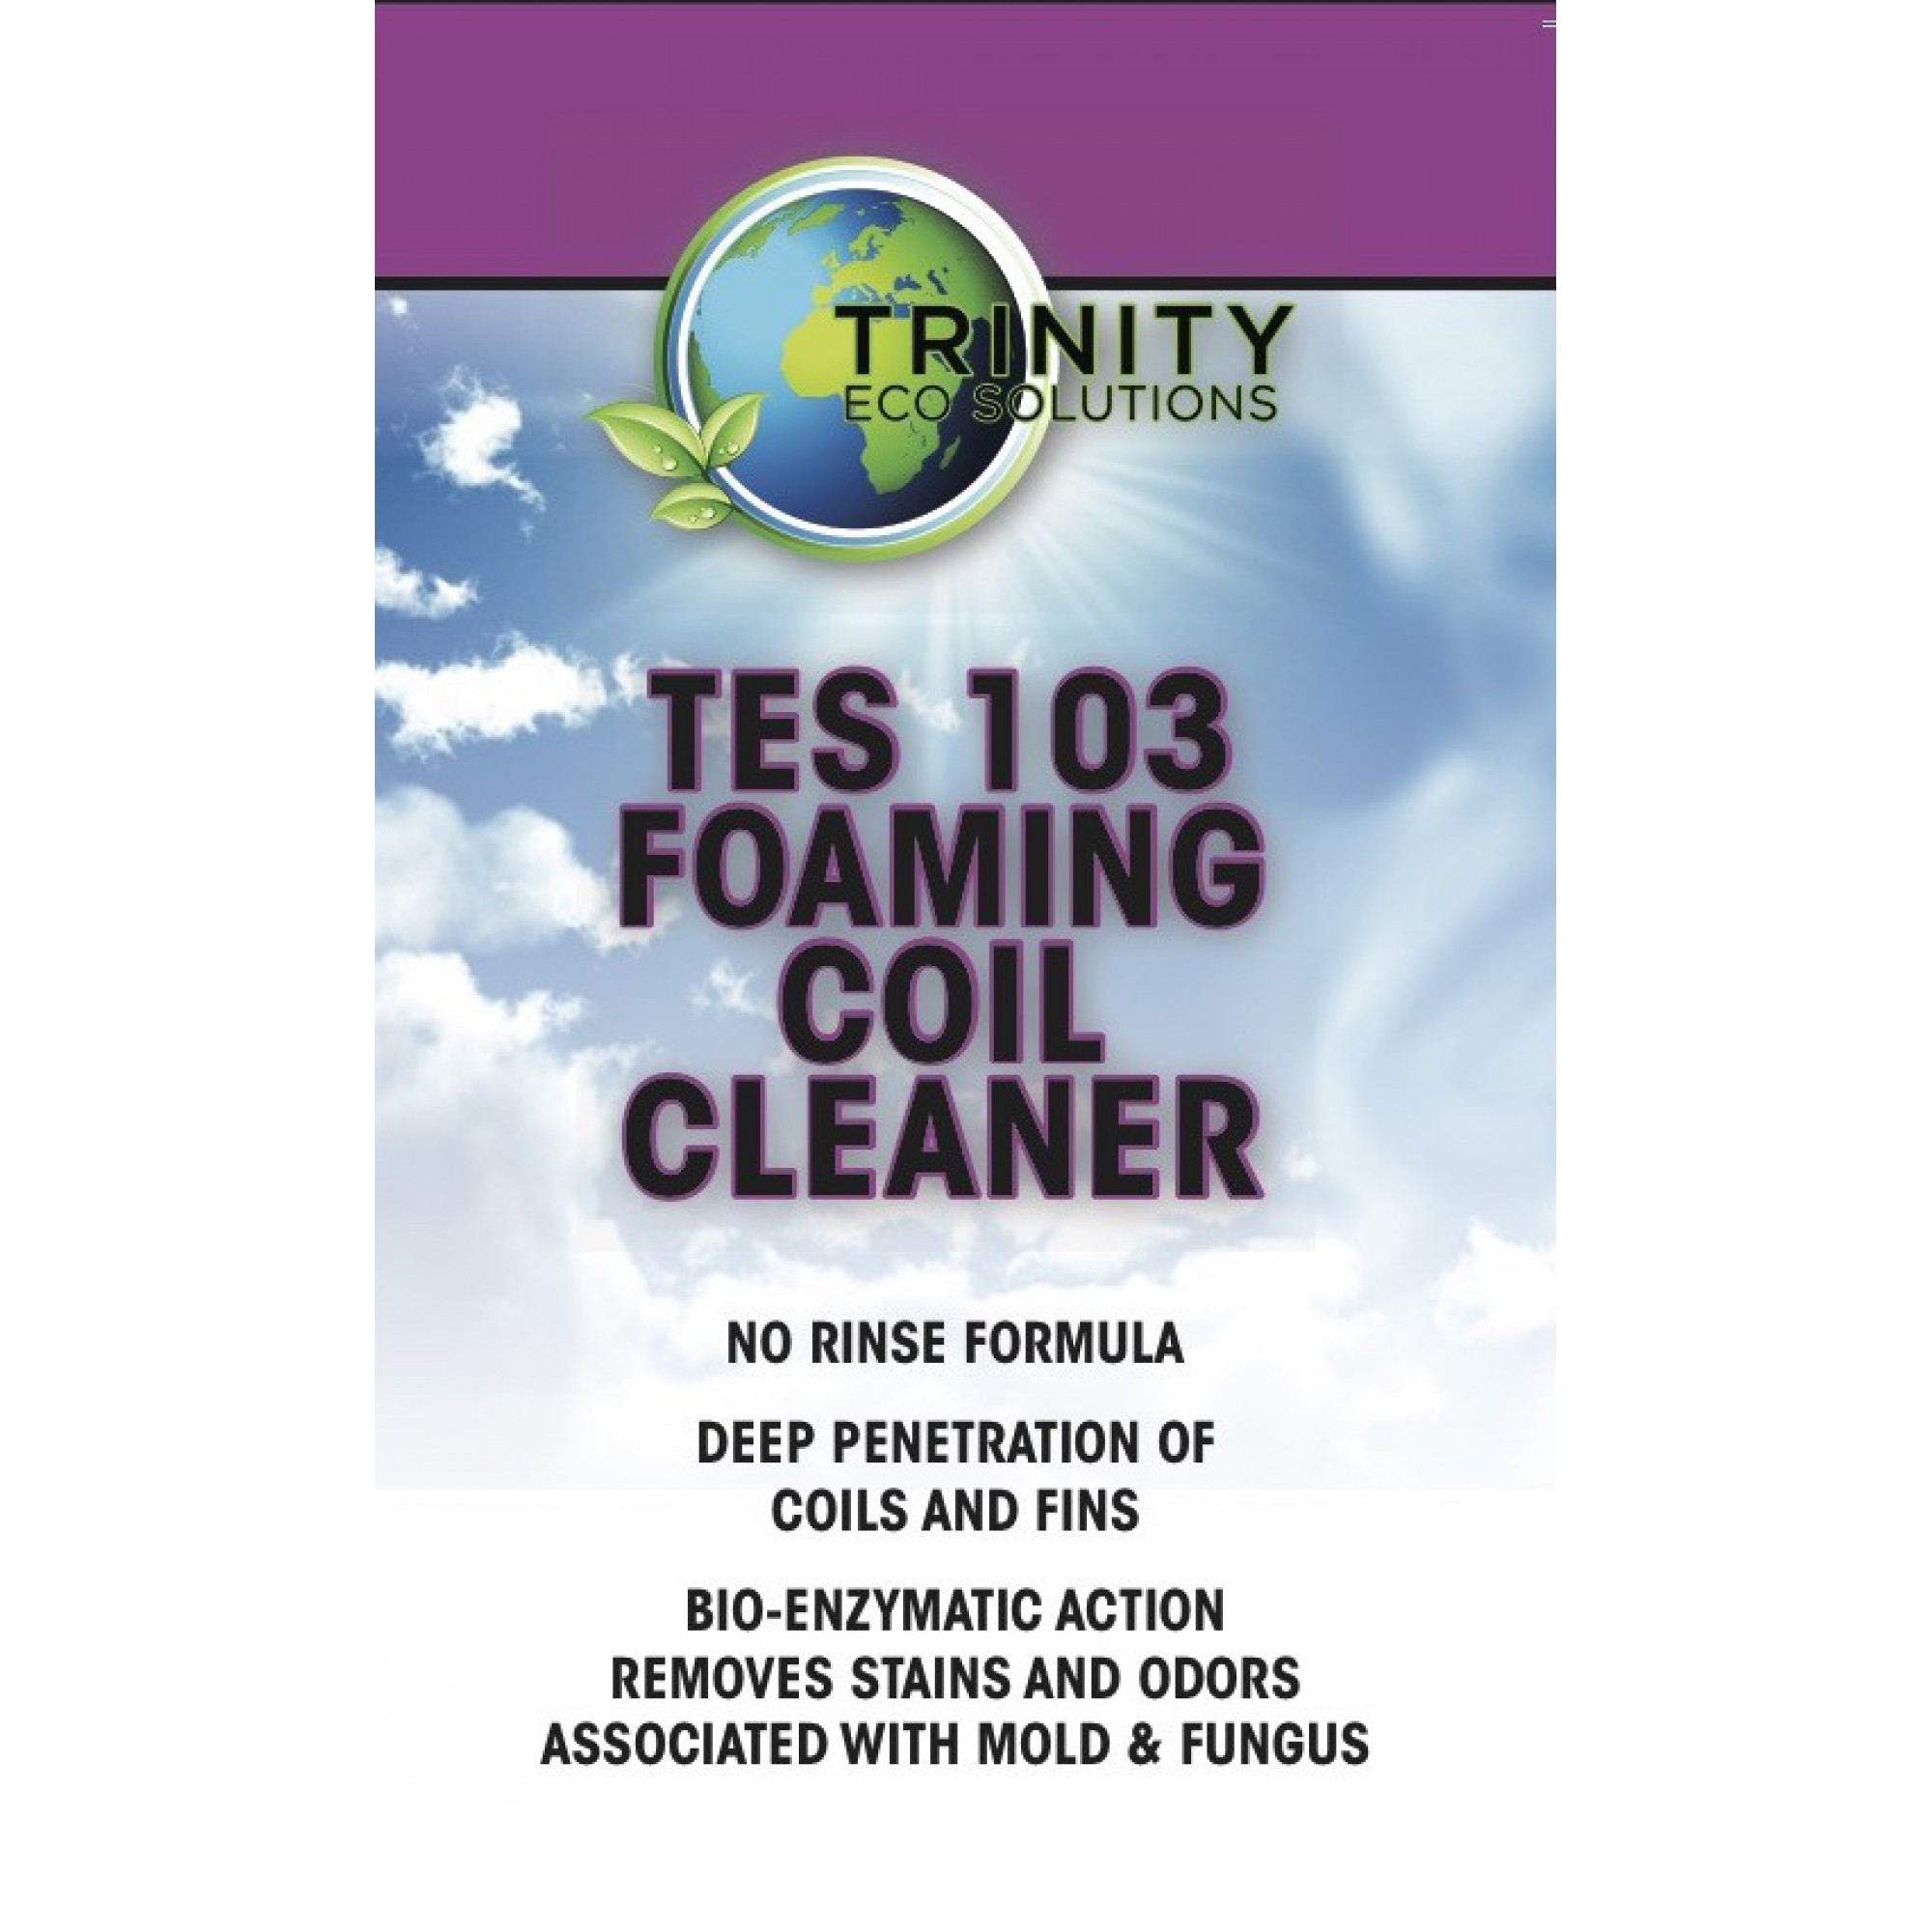 TES 103 Foaming Coil Cleaner